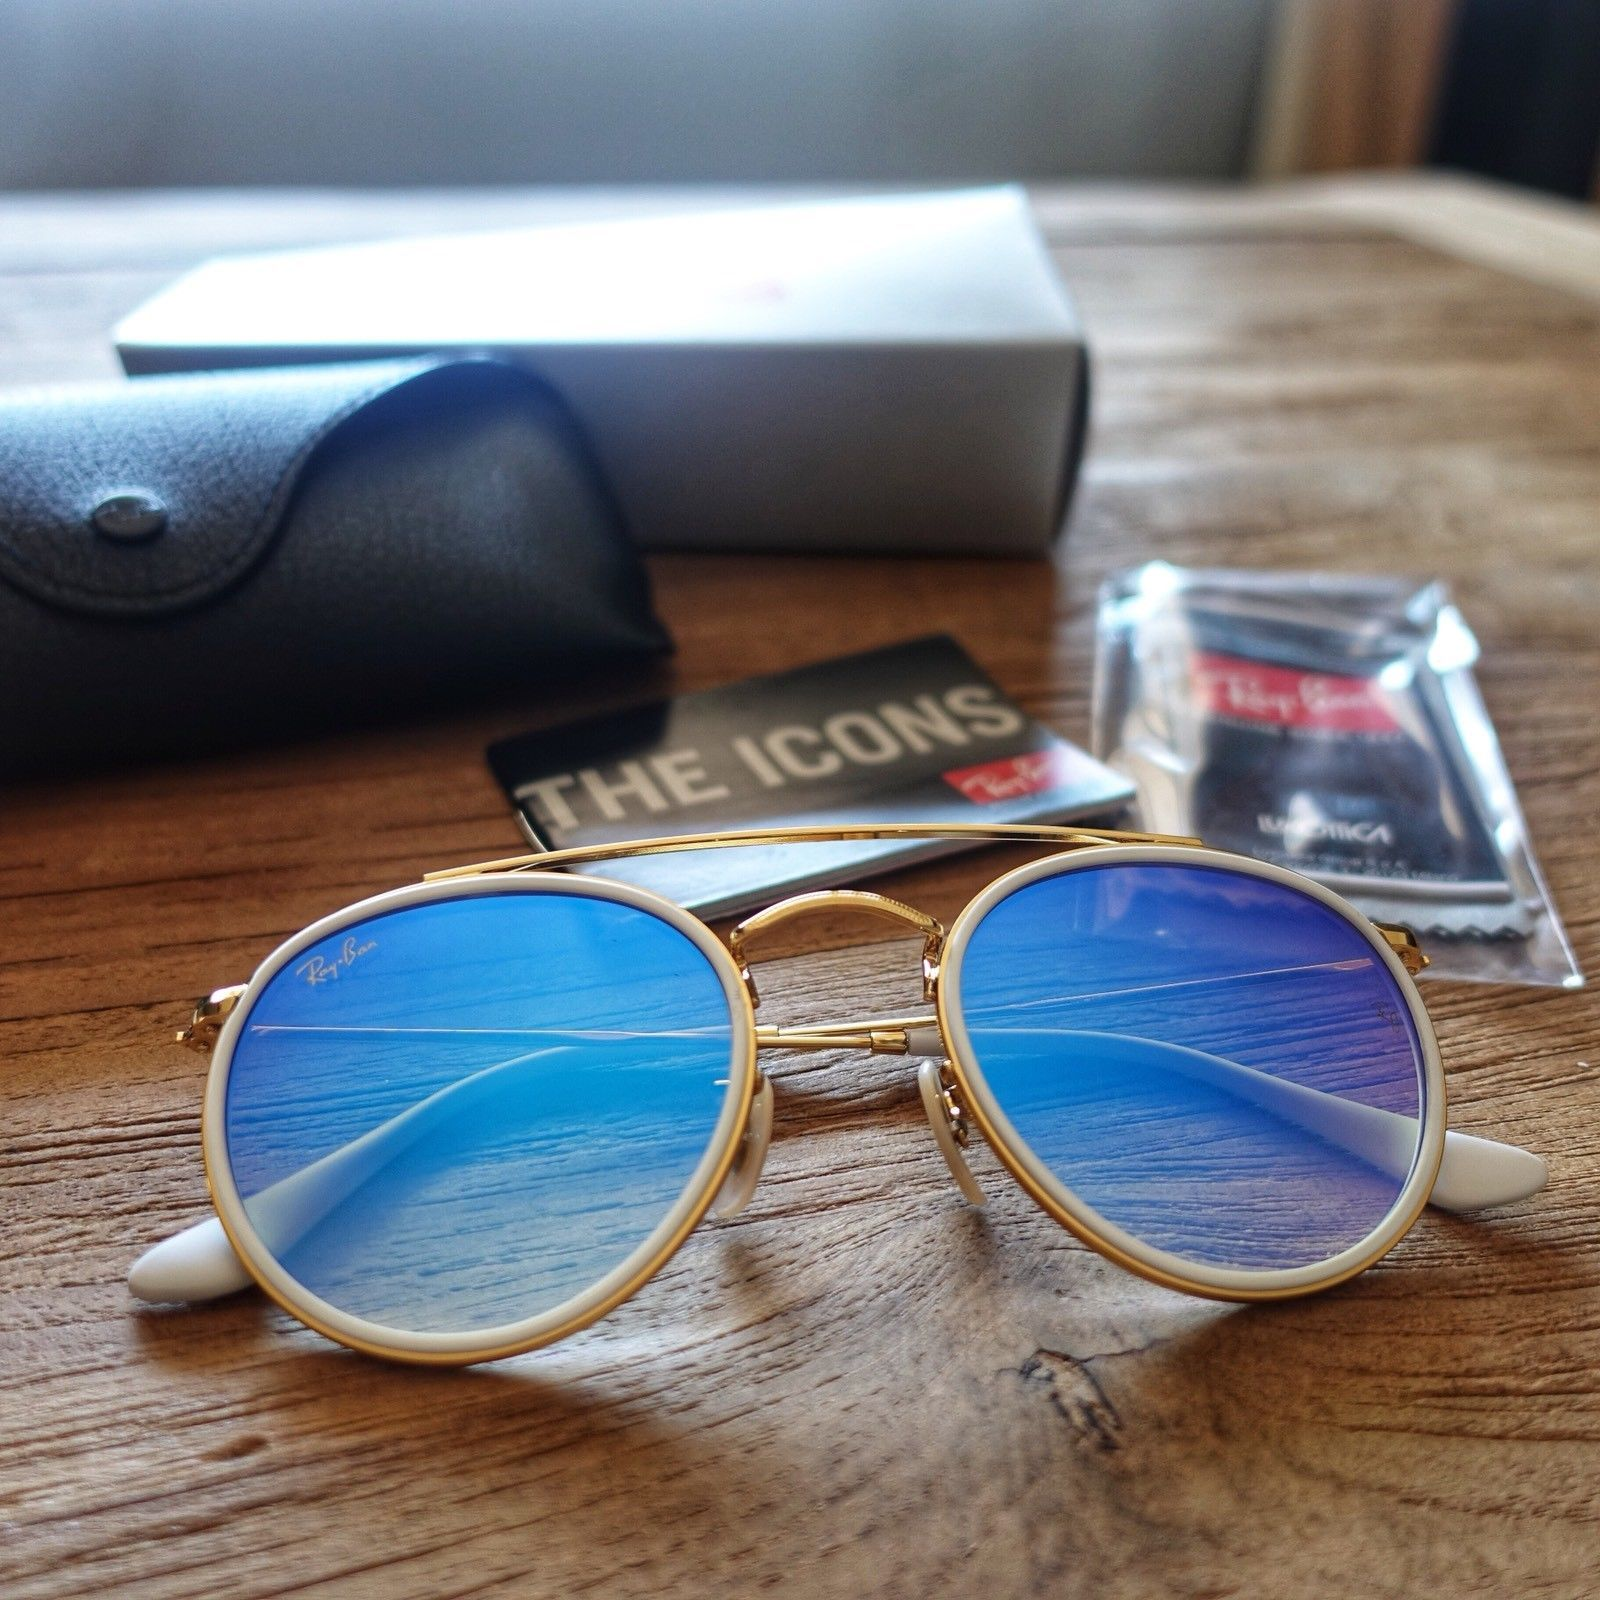 c9a1c1382 RB3647N 001/4O 51-23 Blue Gradient Flash Ray-Ban Round Double Bridge  Sunglasses | eBay